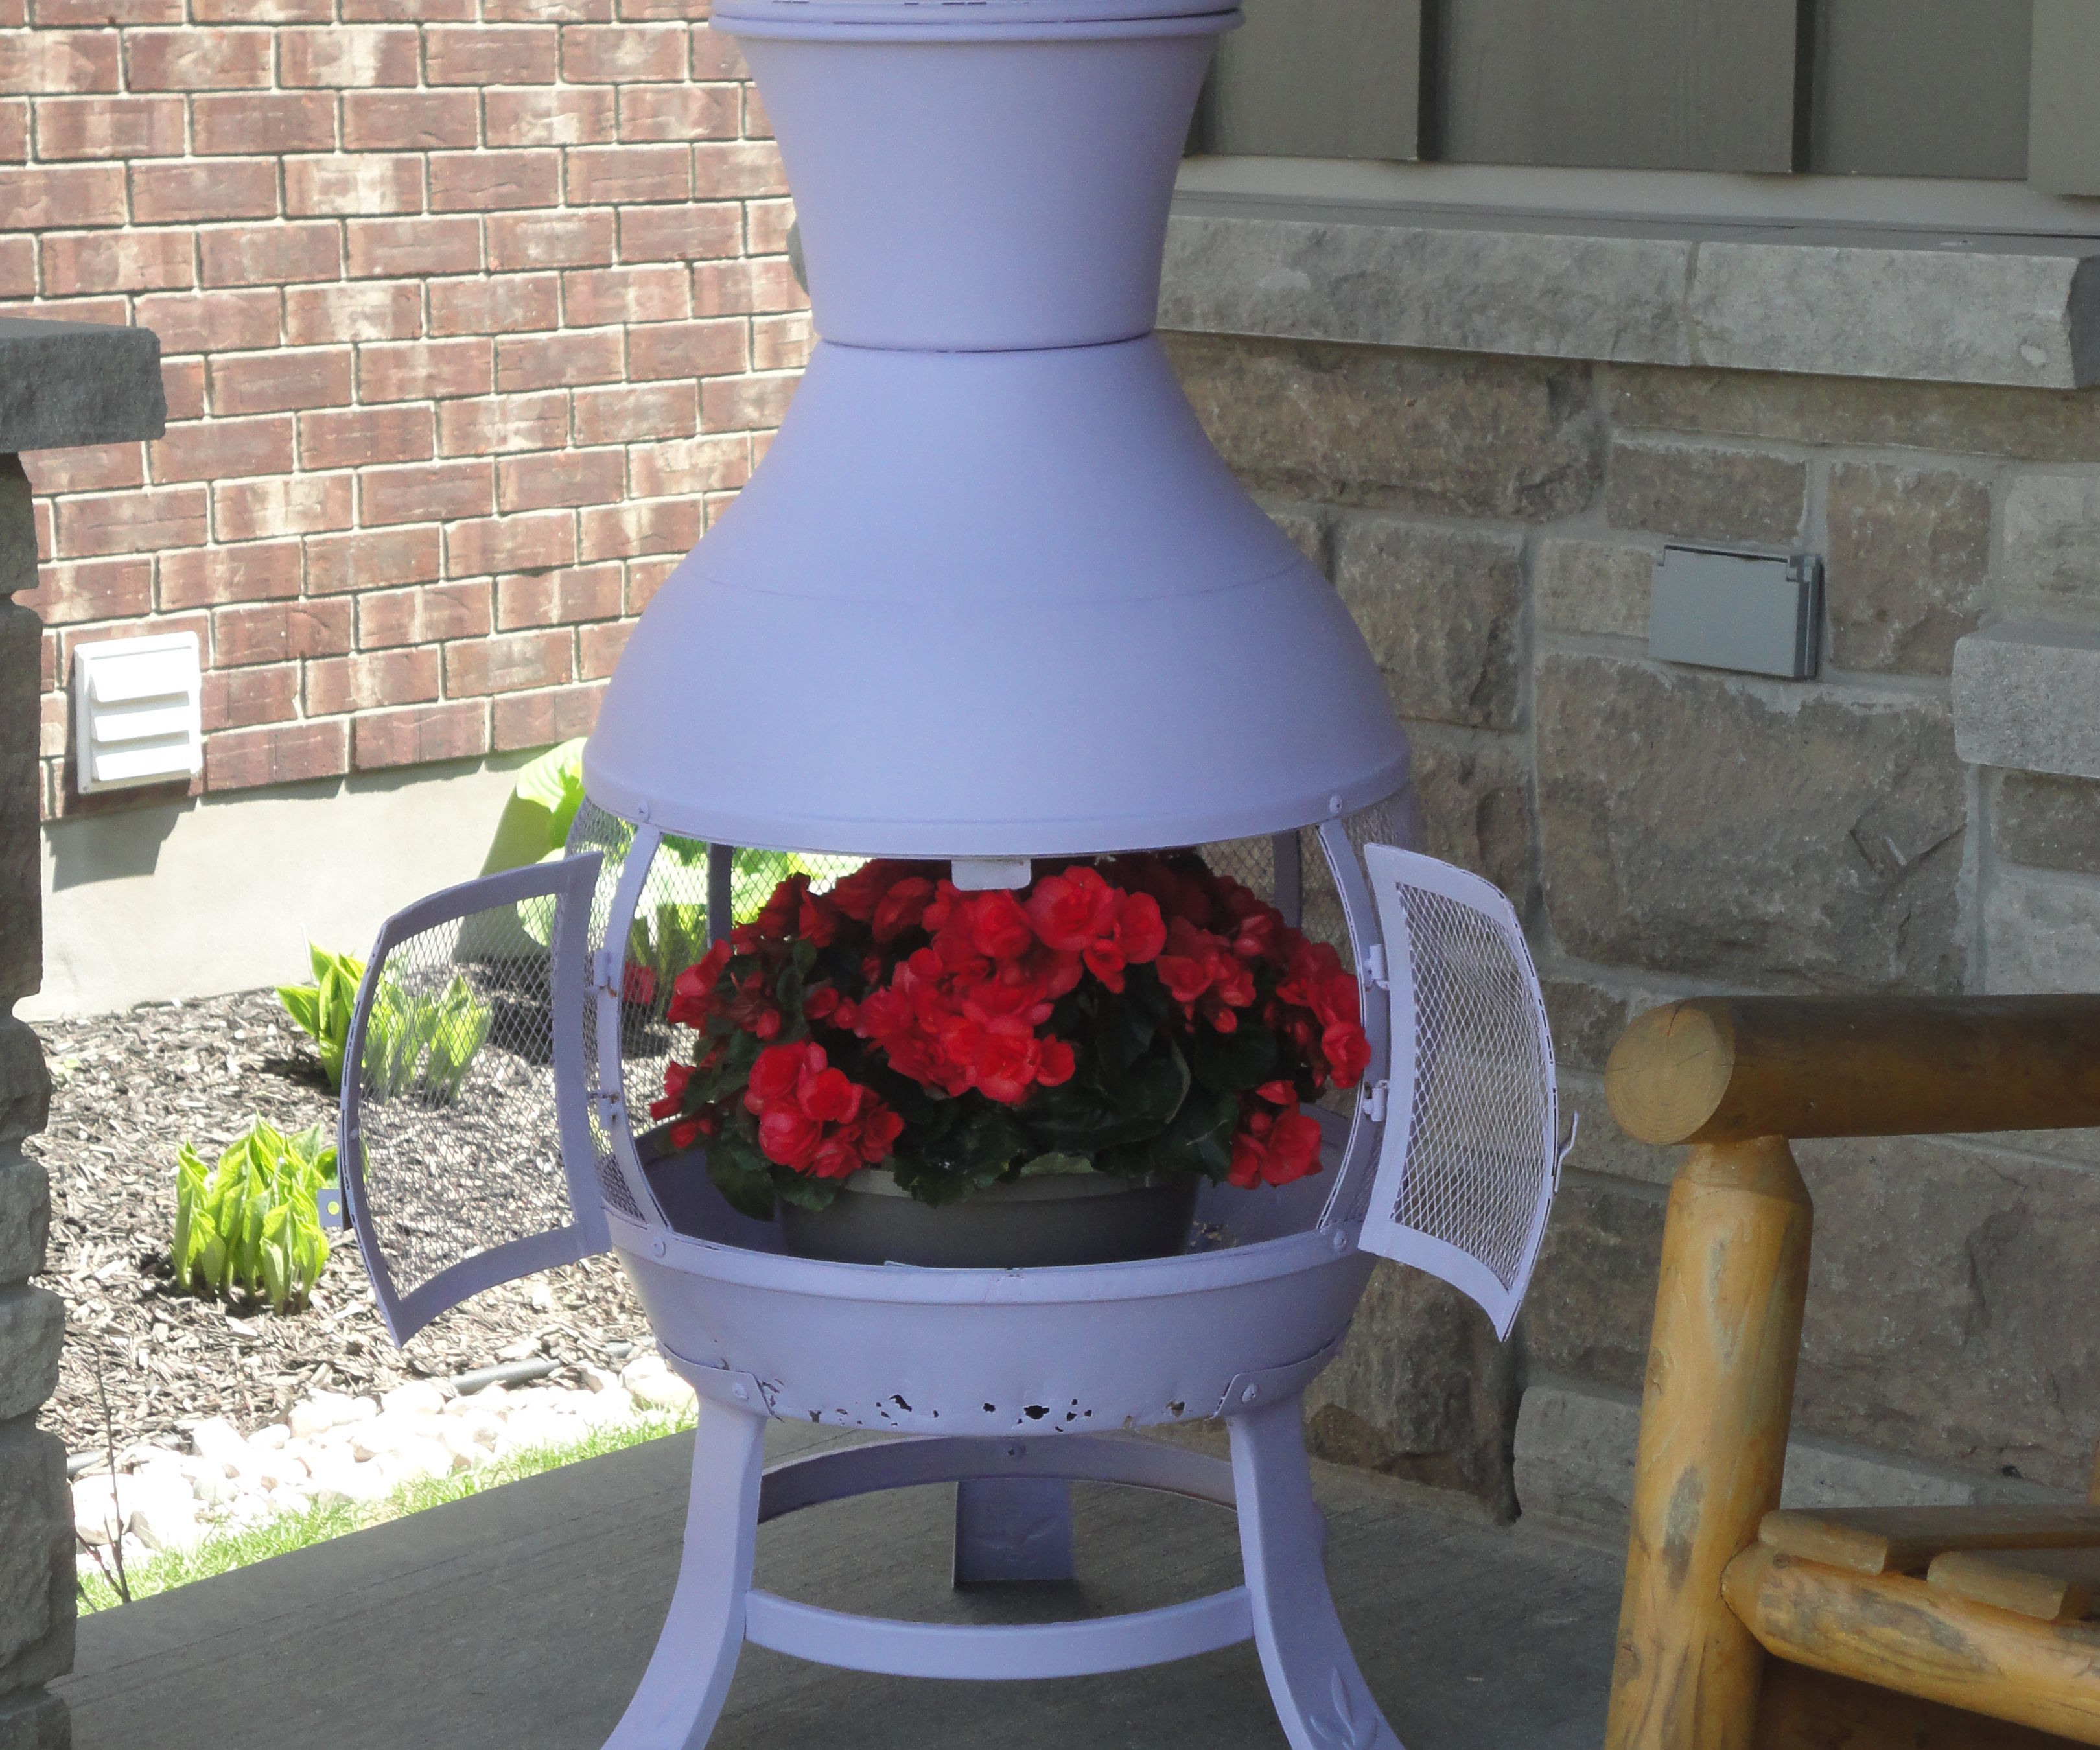 Repurpose old chiminea.